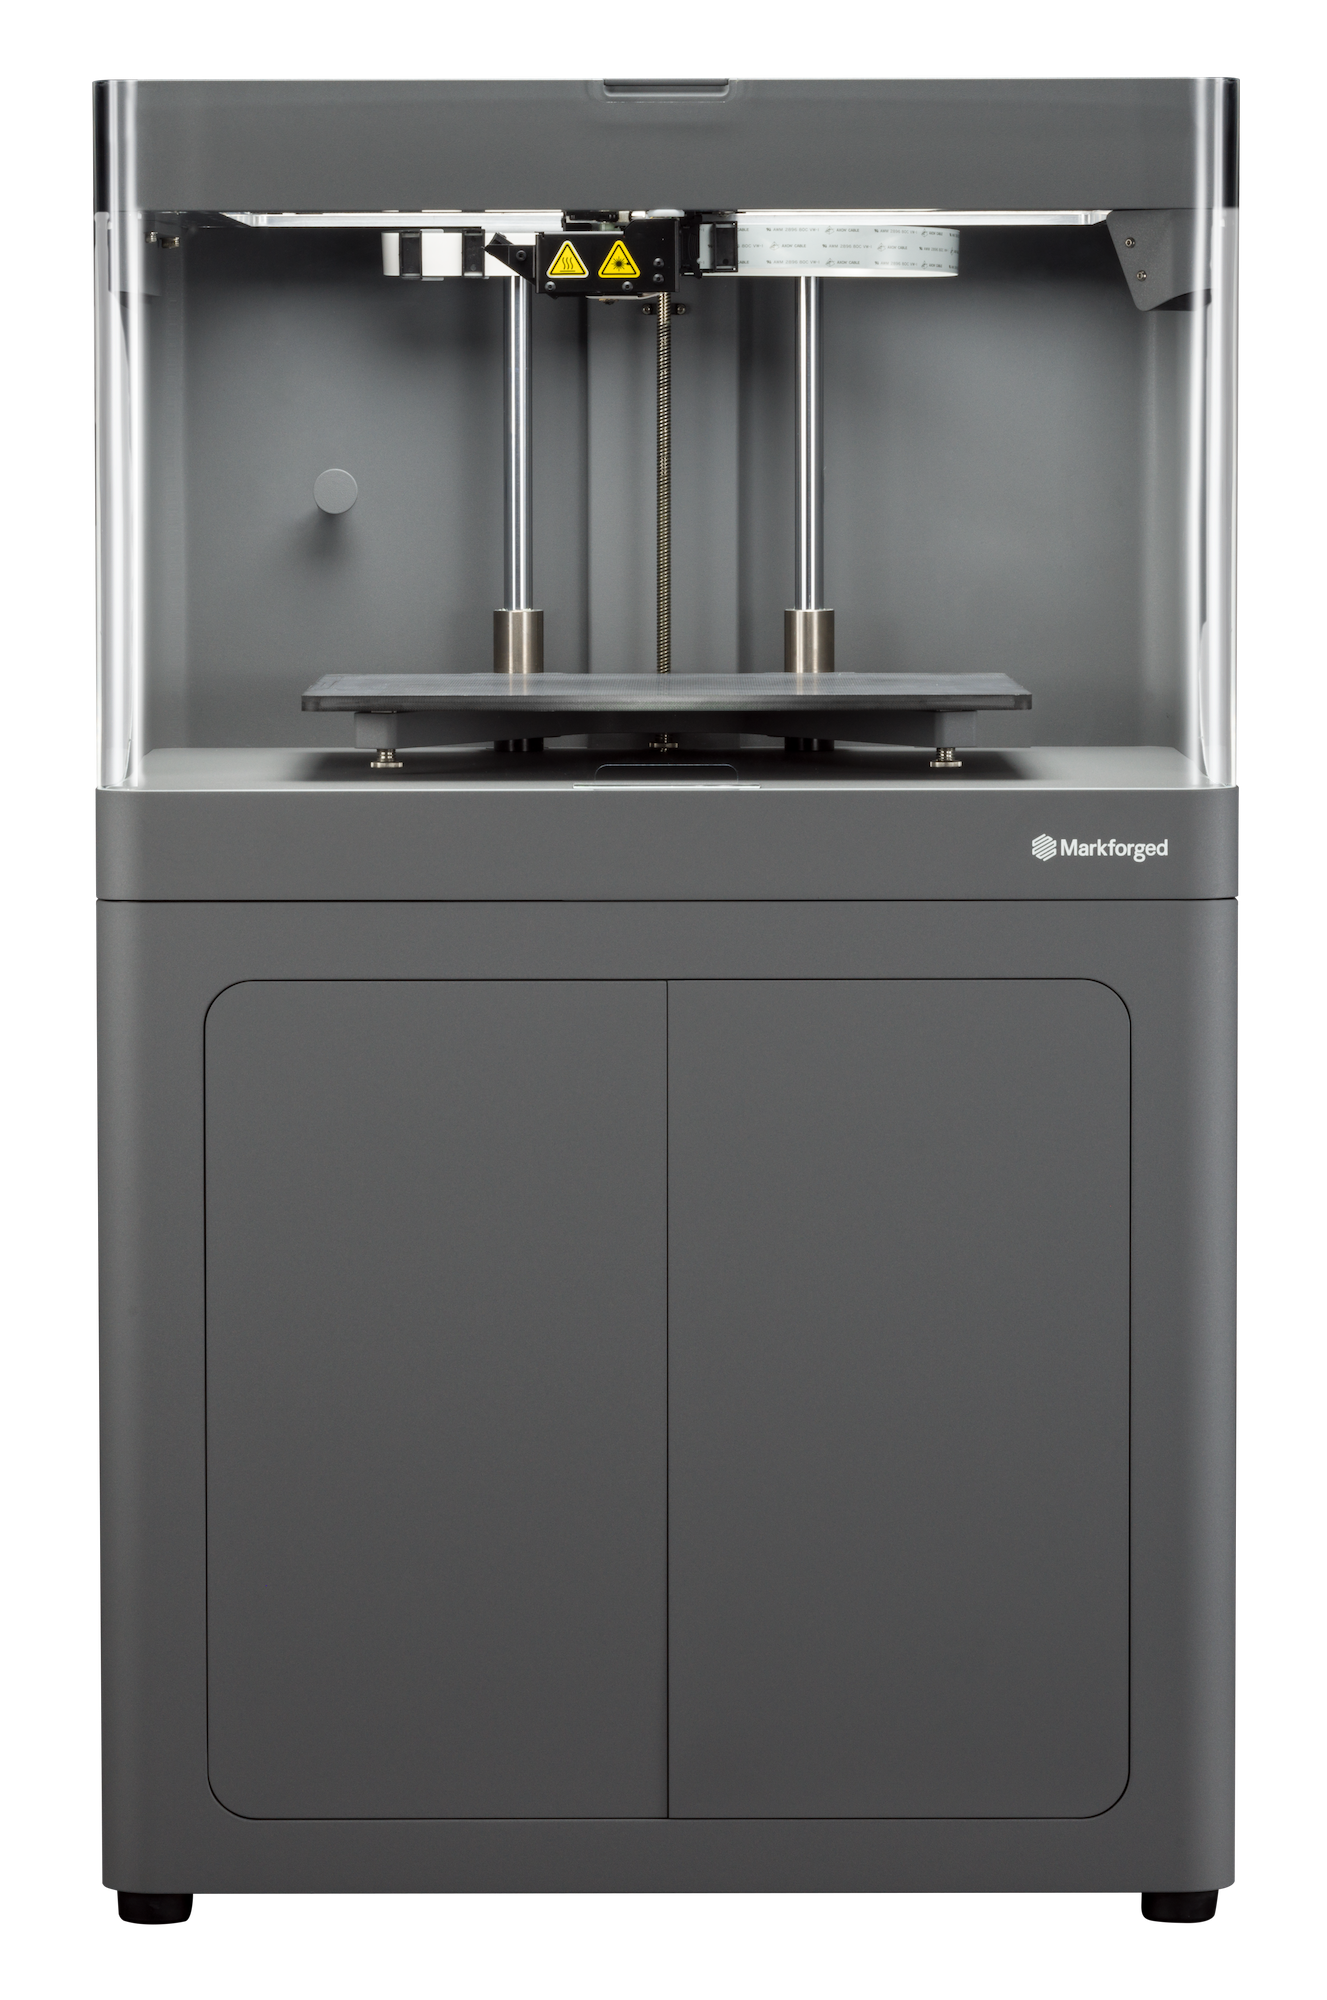 Markforged X3 Industrial-Grade 3D Printer